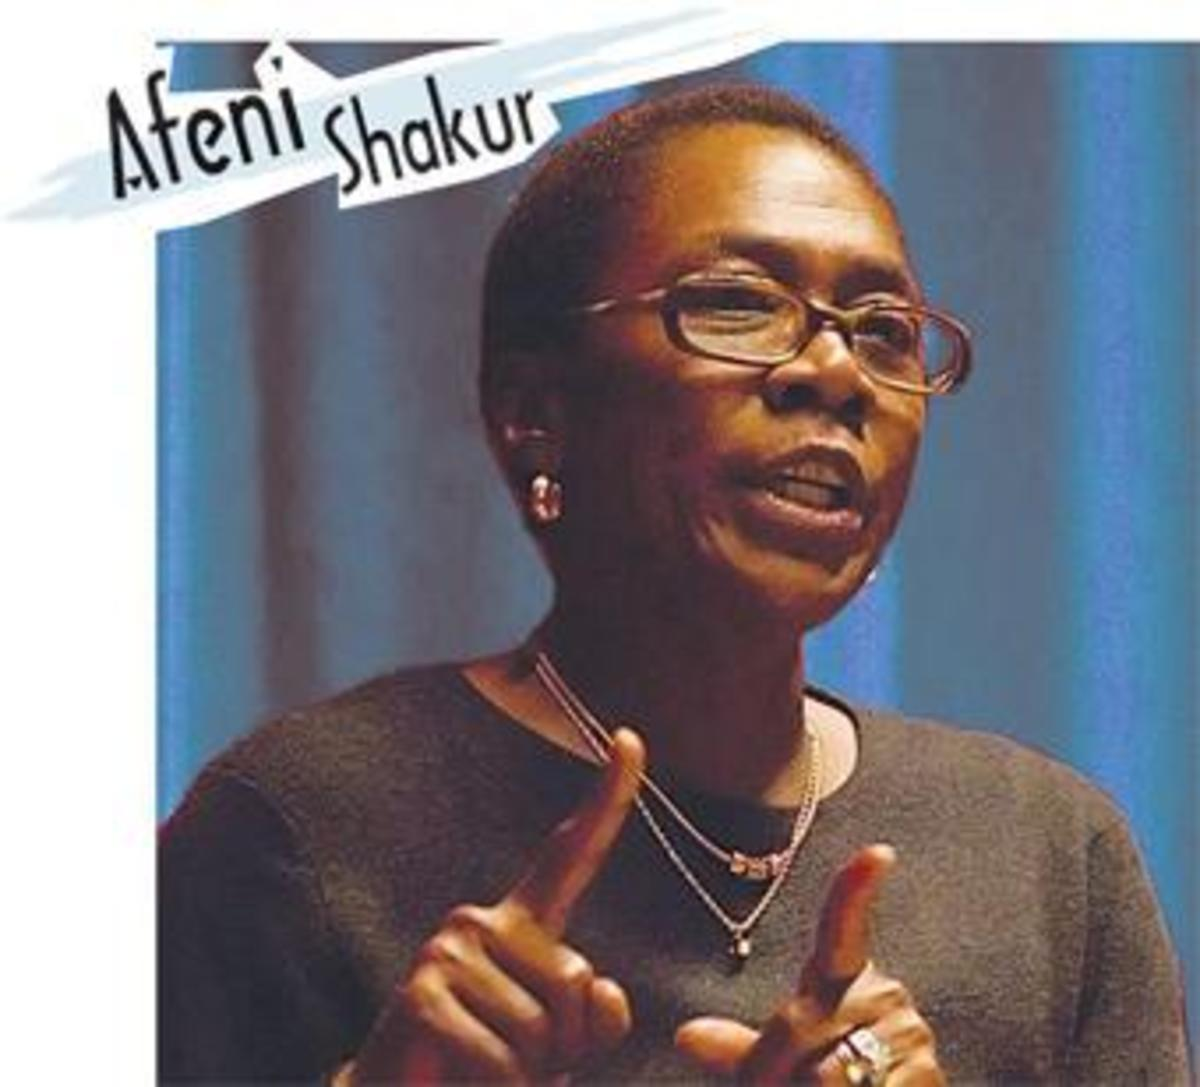 Afeni Shakur Ex-Member of the Black Panther Party for Self Defense